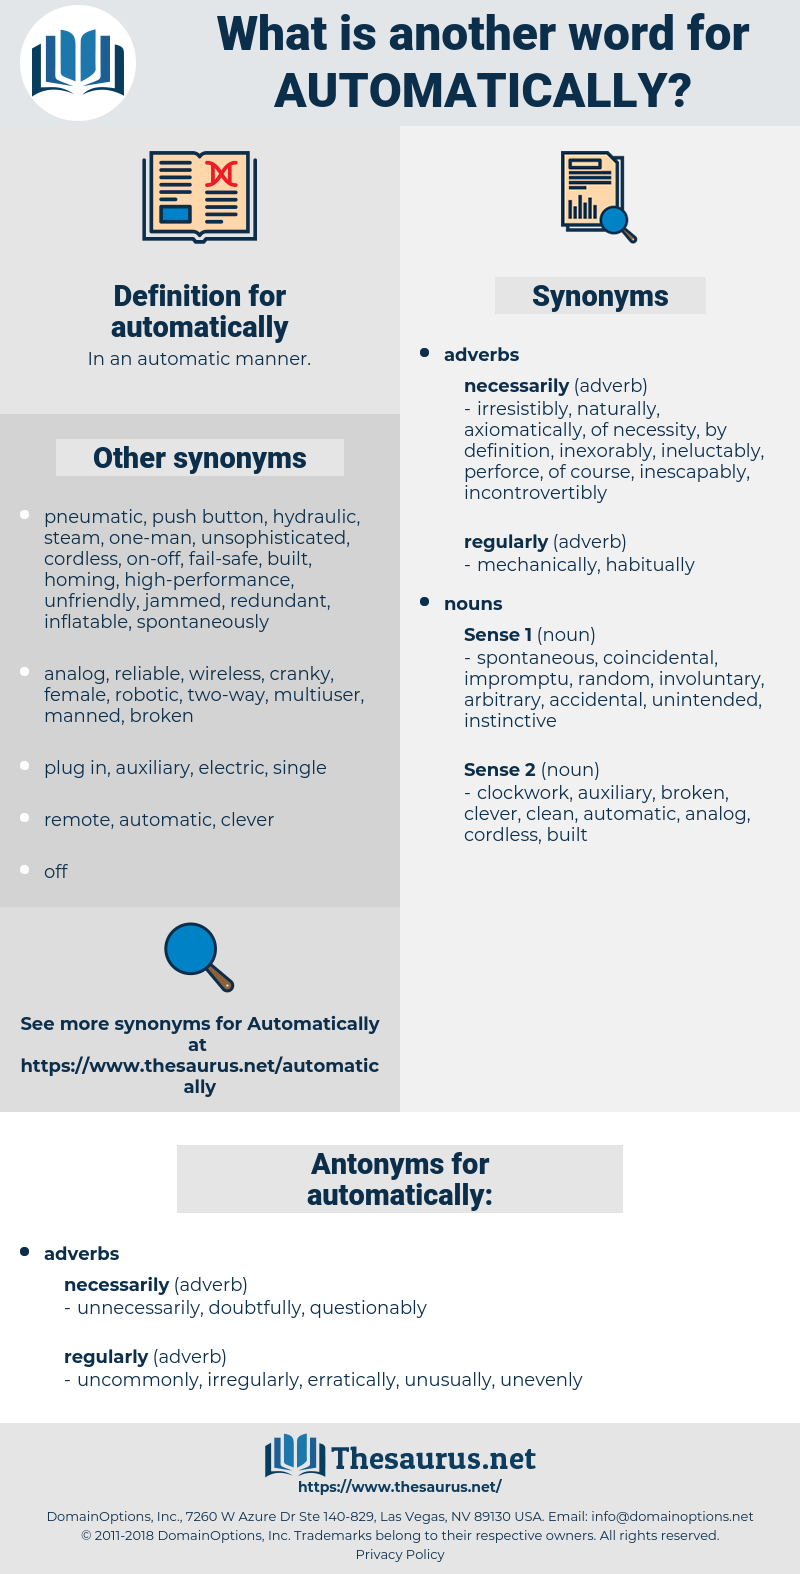 automatically, synonym automatically, another word for automatically, words like automatically, thesaurus automatically